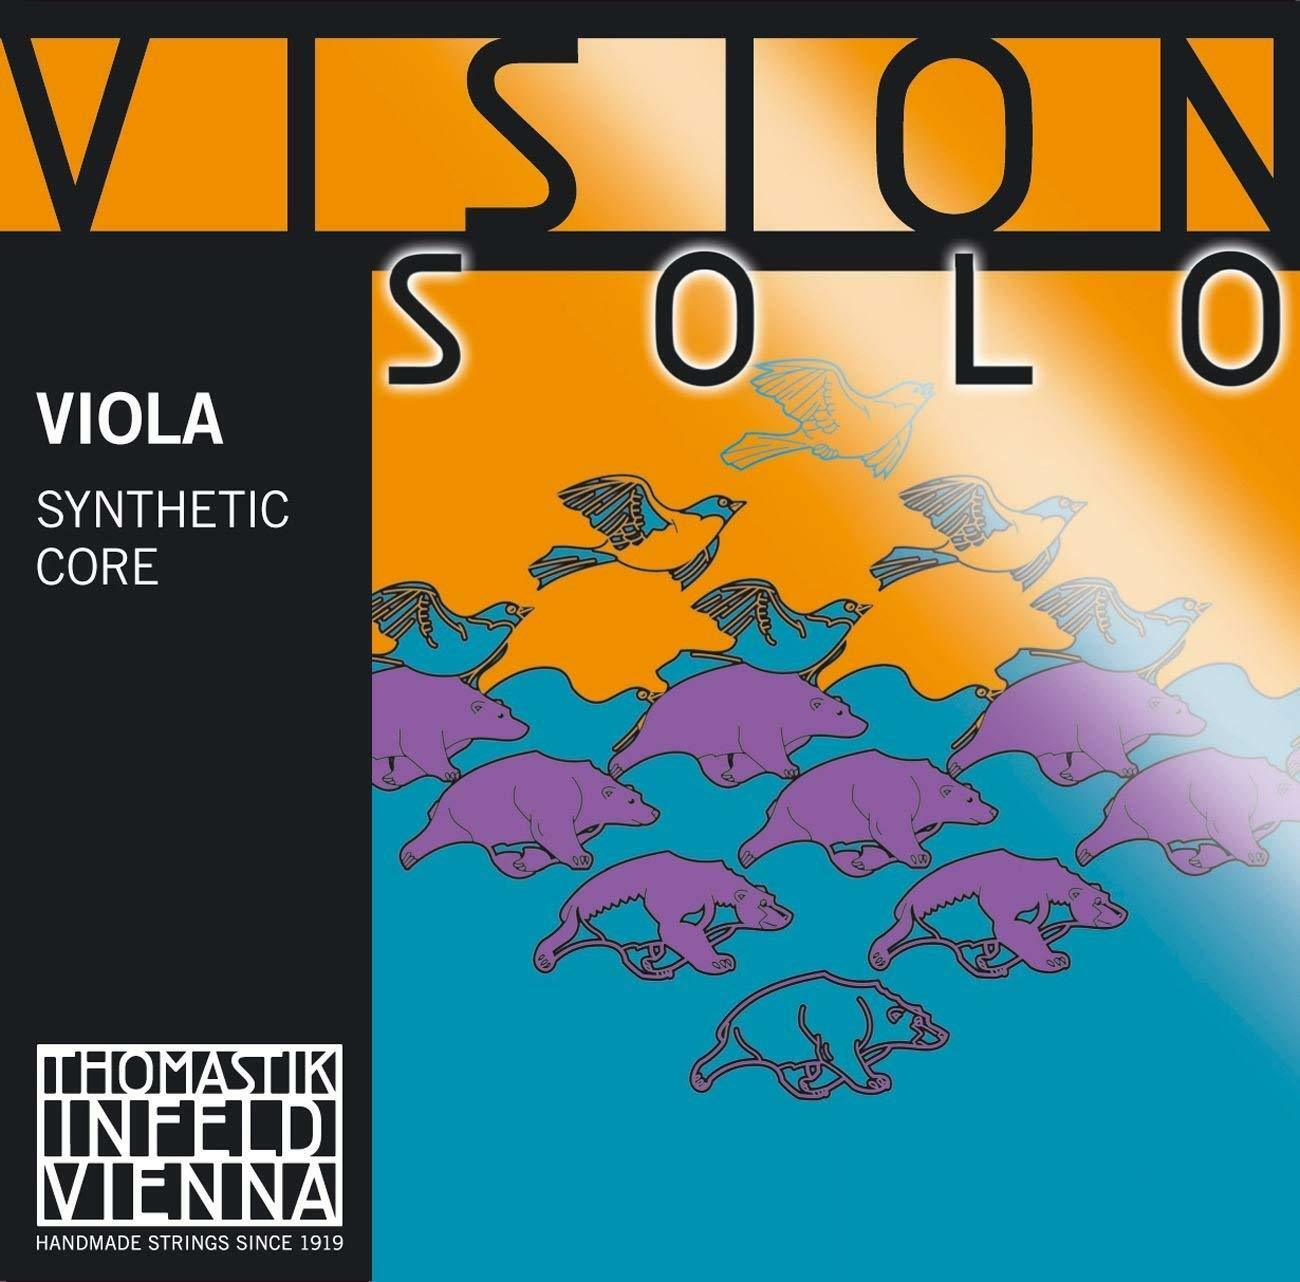 Thomastik Infeld Vision Solo Viola String Set - Full Größe - Medium Gauge